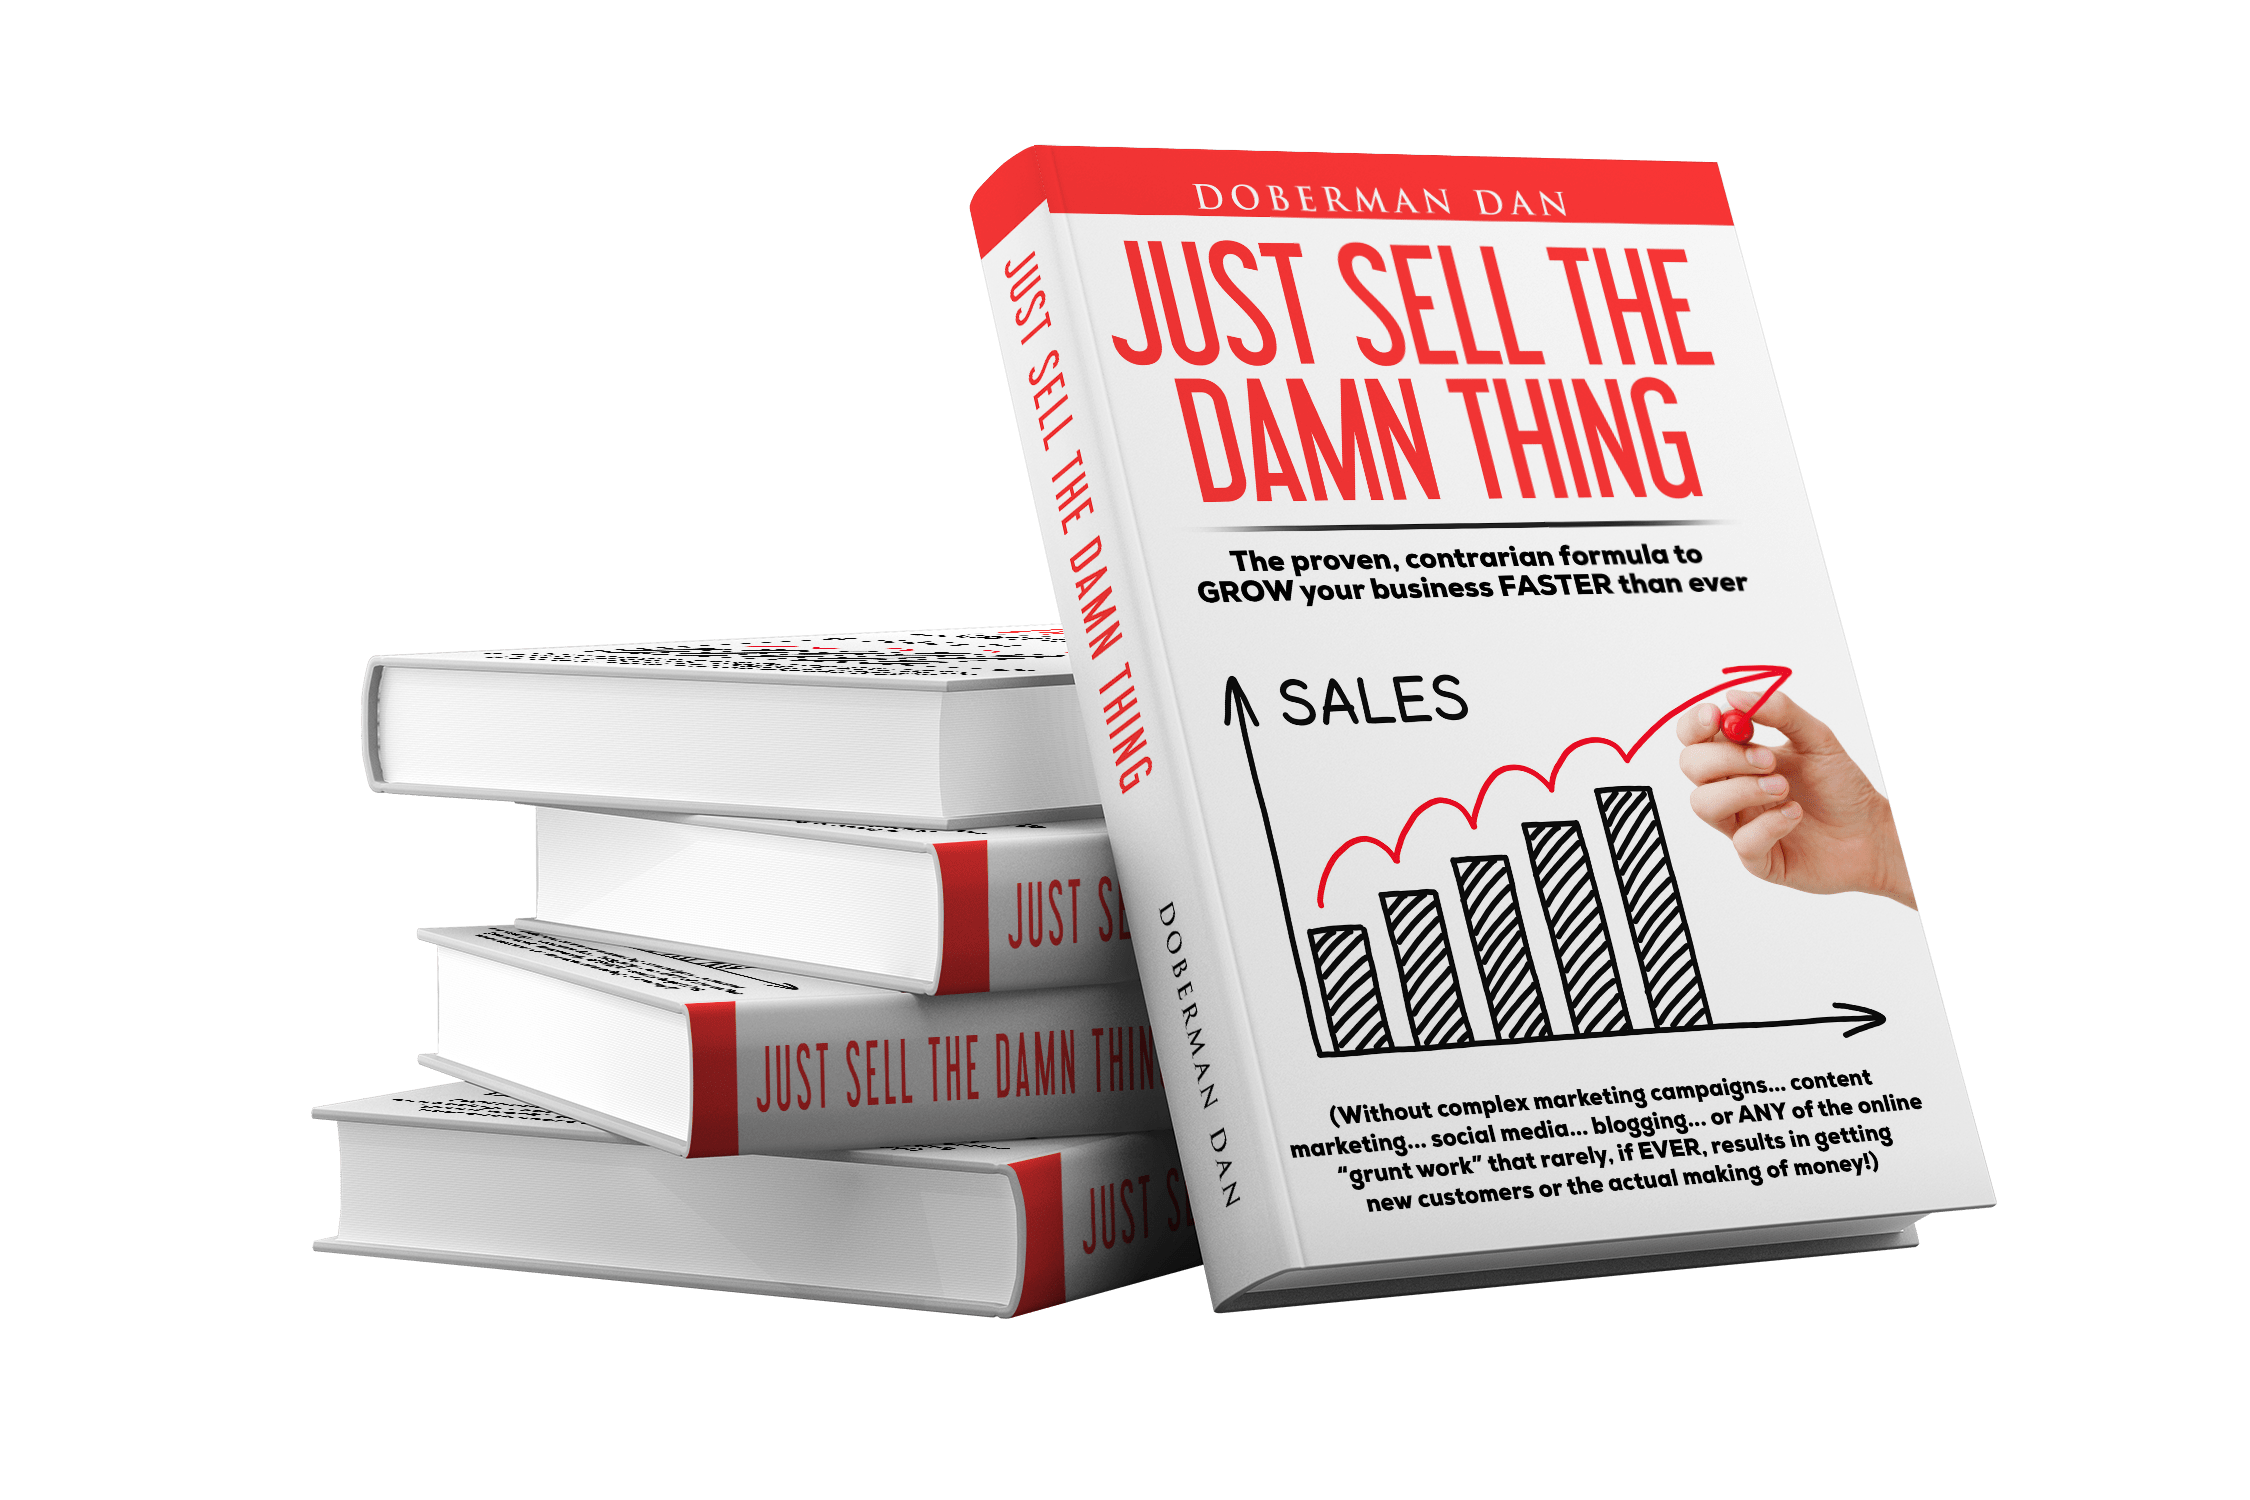 The People Who Read This Book Will End Up With Your Money! 读这本书的人最后会得到不菲的收益!(Just Sell The Damn Thing)